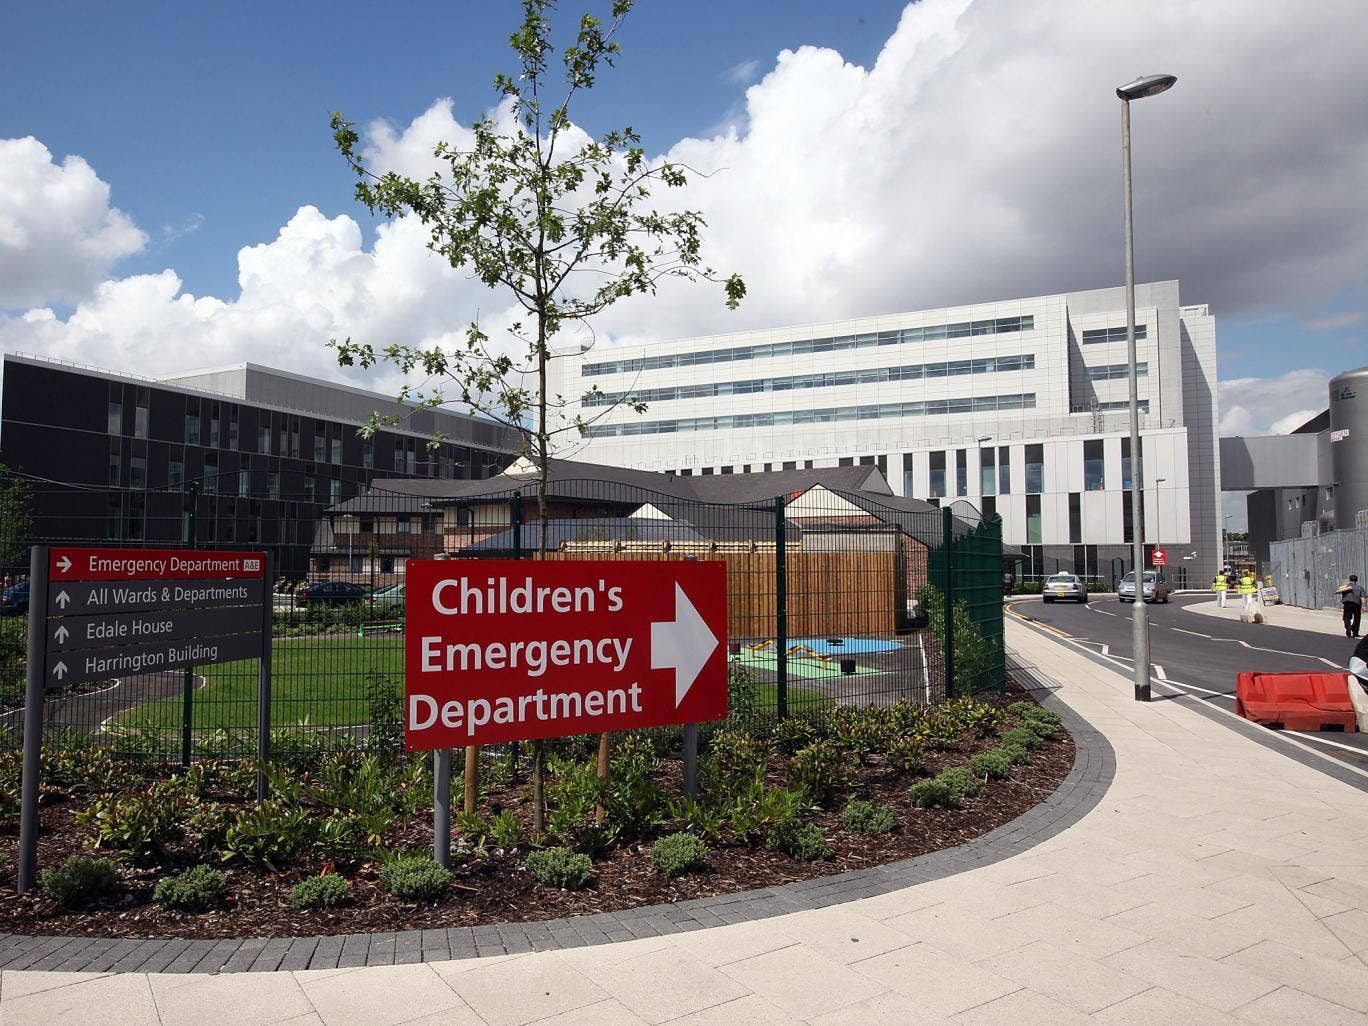 Thomas was transferred to the Royal Manchester Children's Hospital, where he died from his injuries.